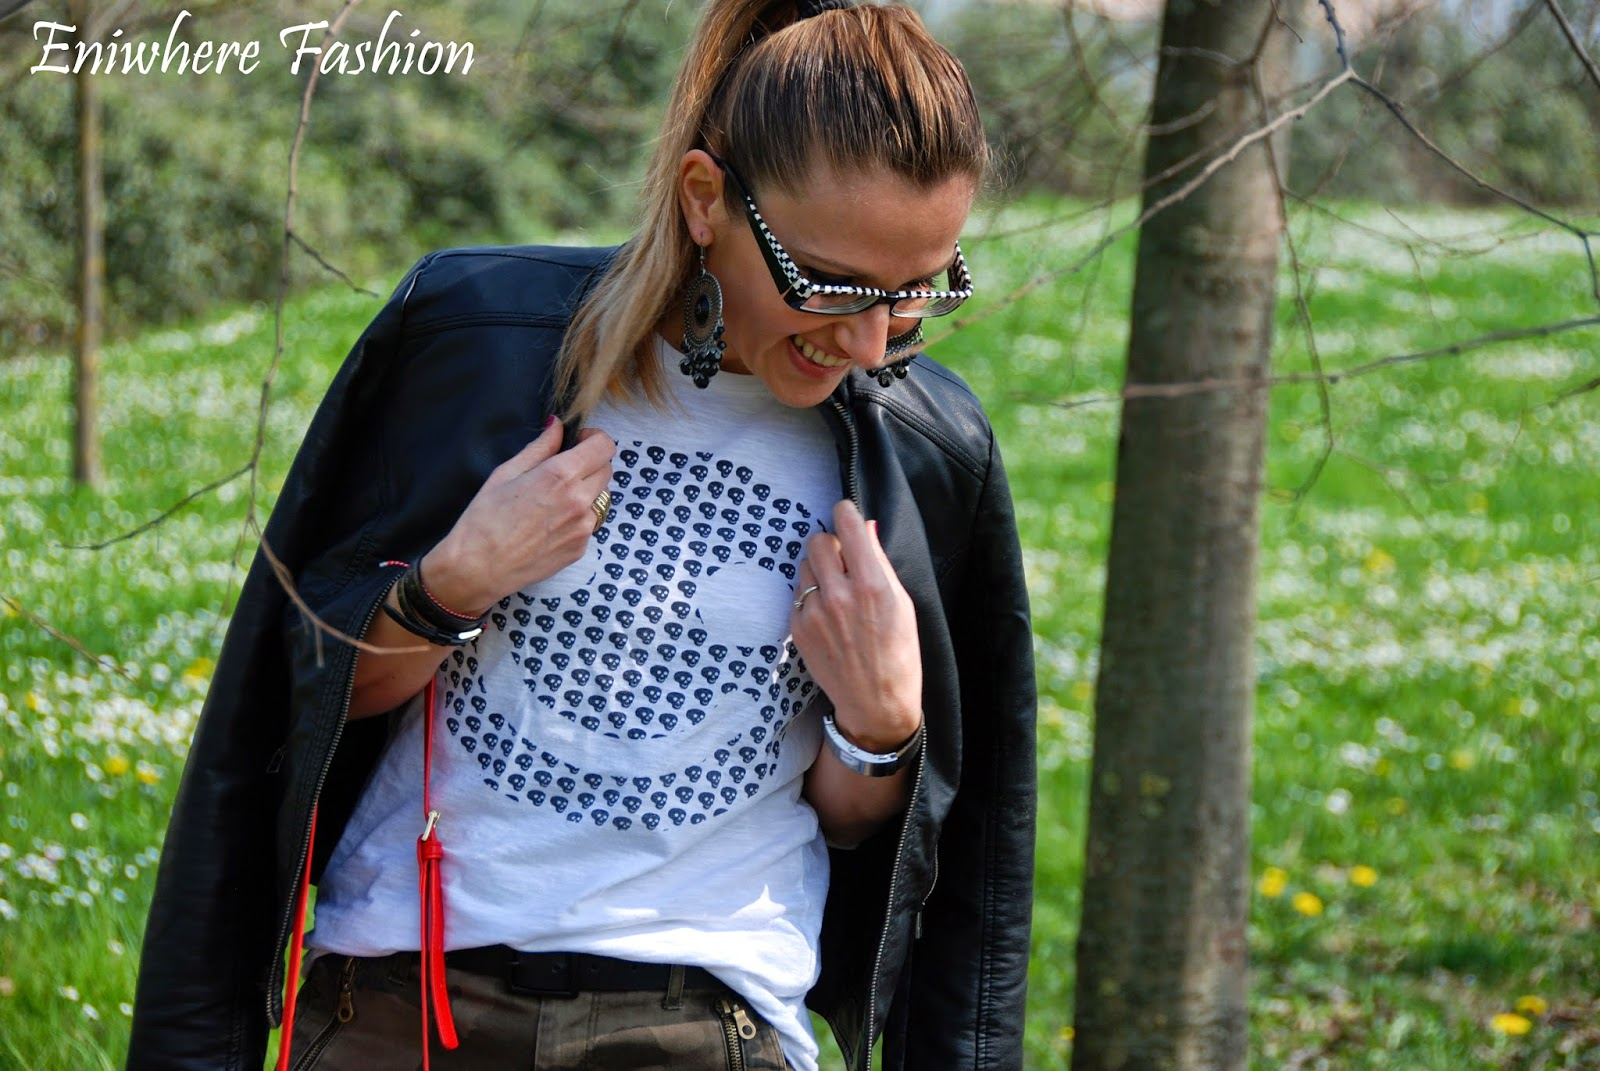 Eniwhere Fashion - campo margherite - outfit Zara